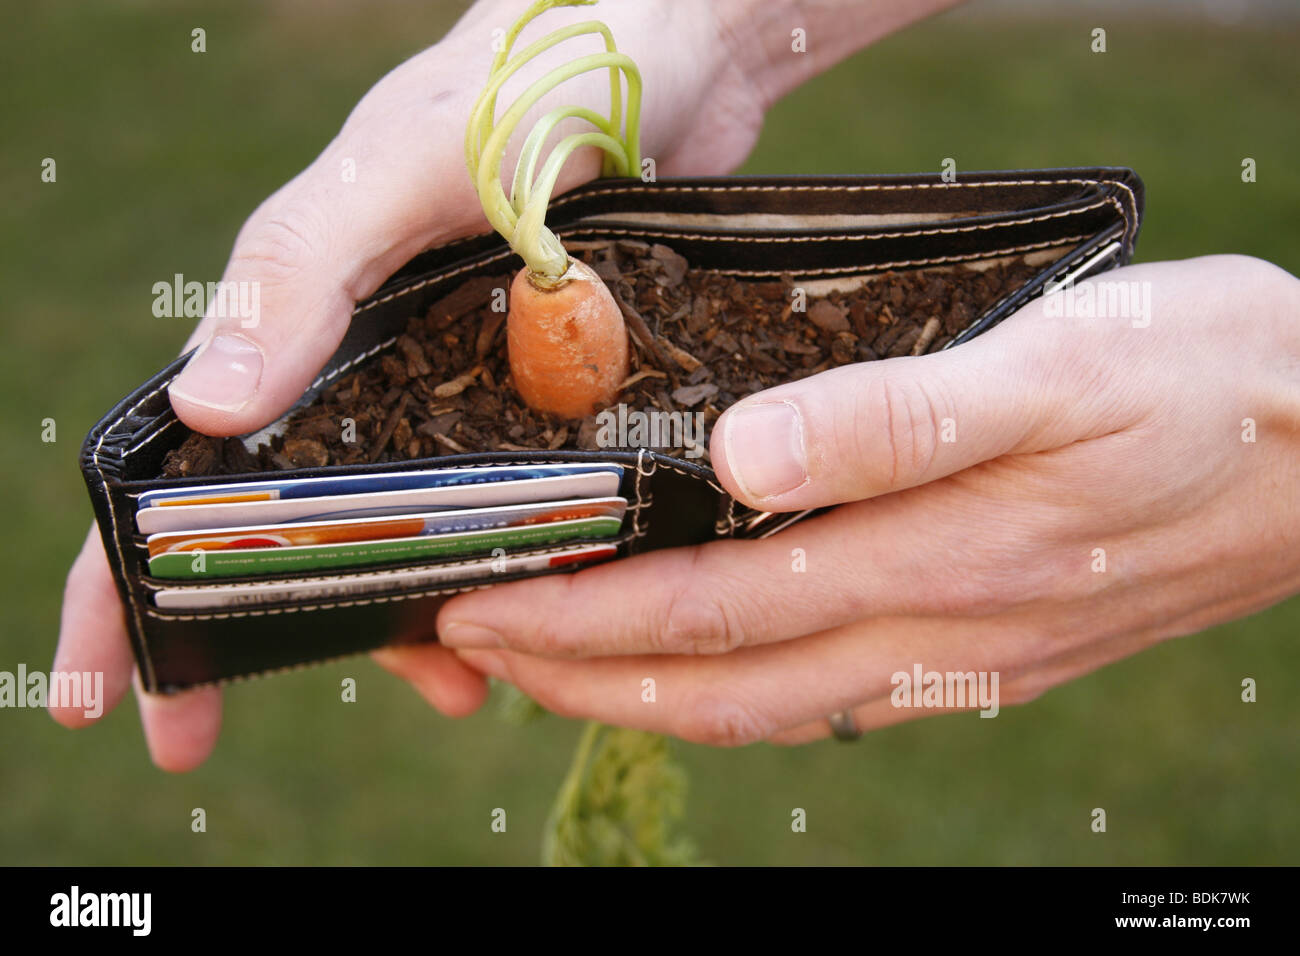 Carrot in a wallet - Stock Image